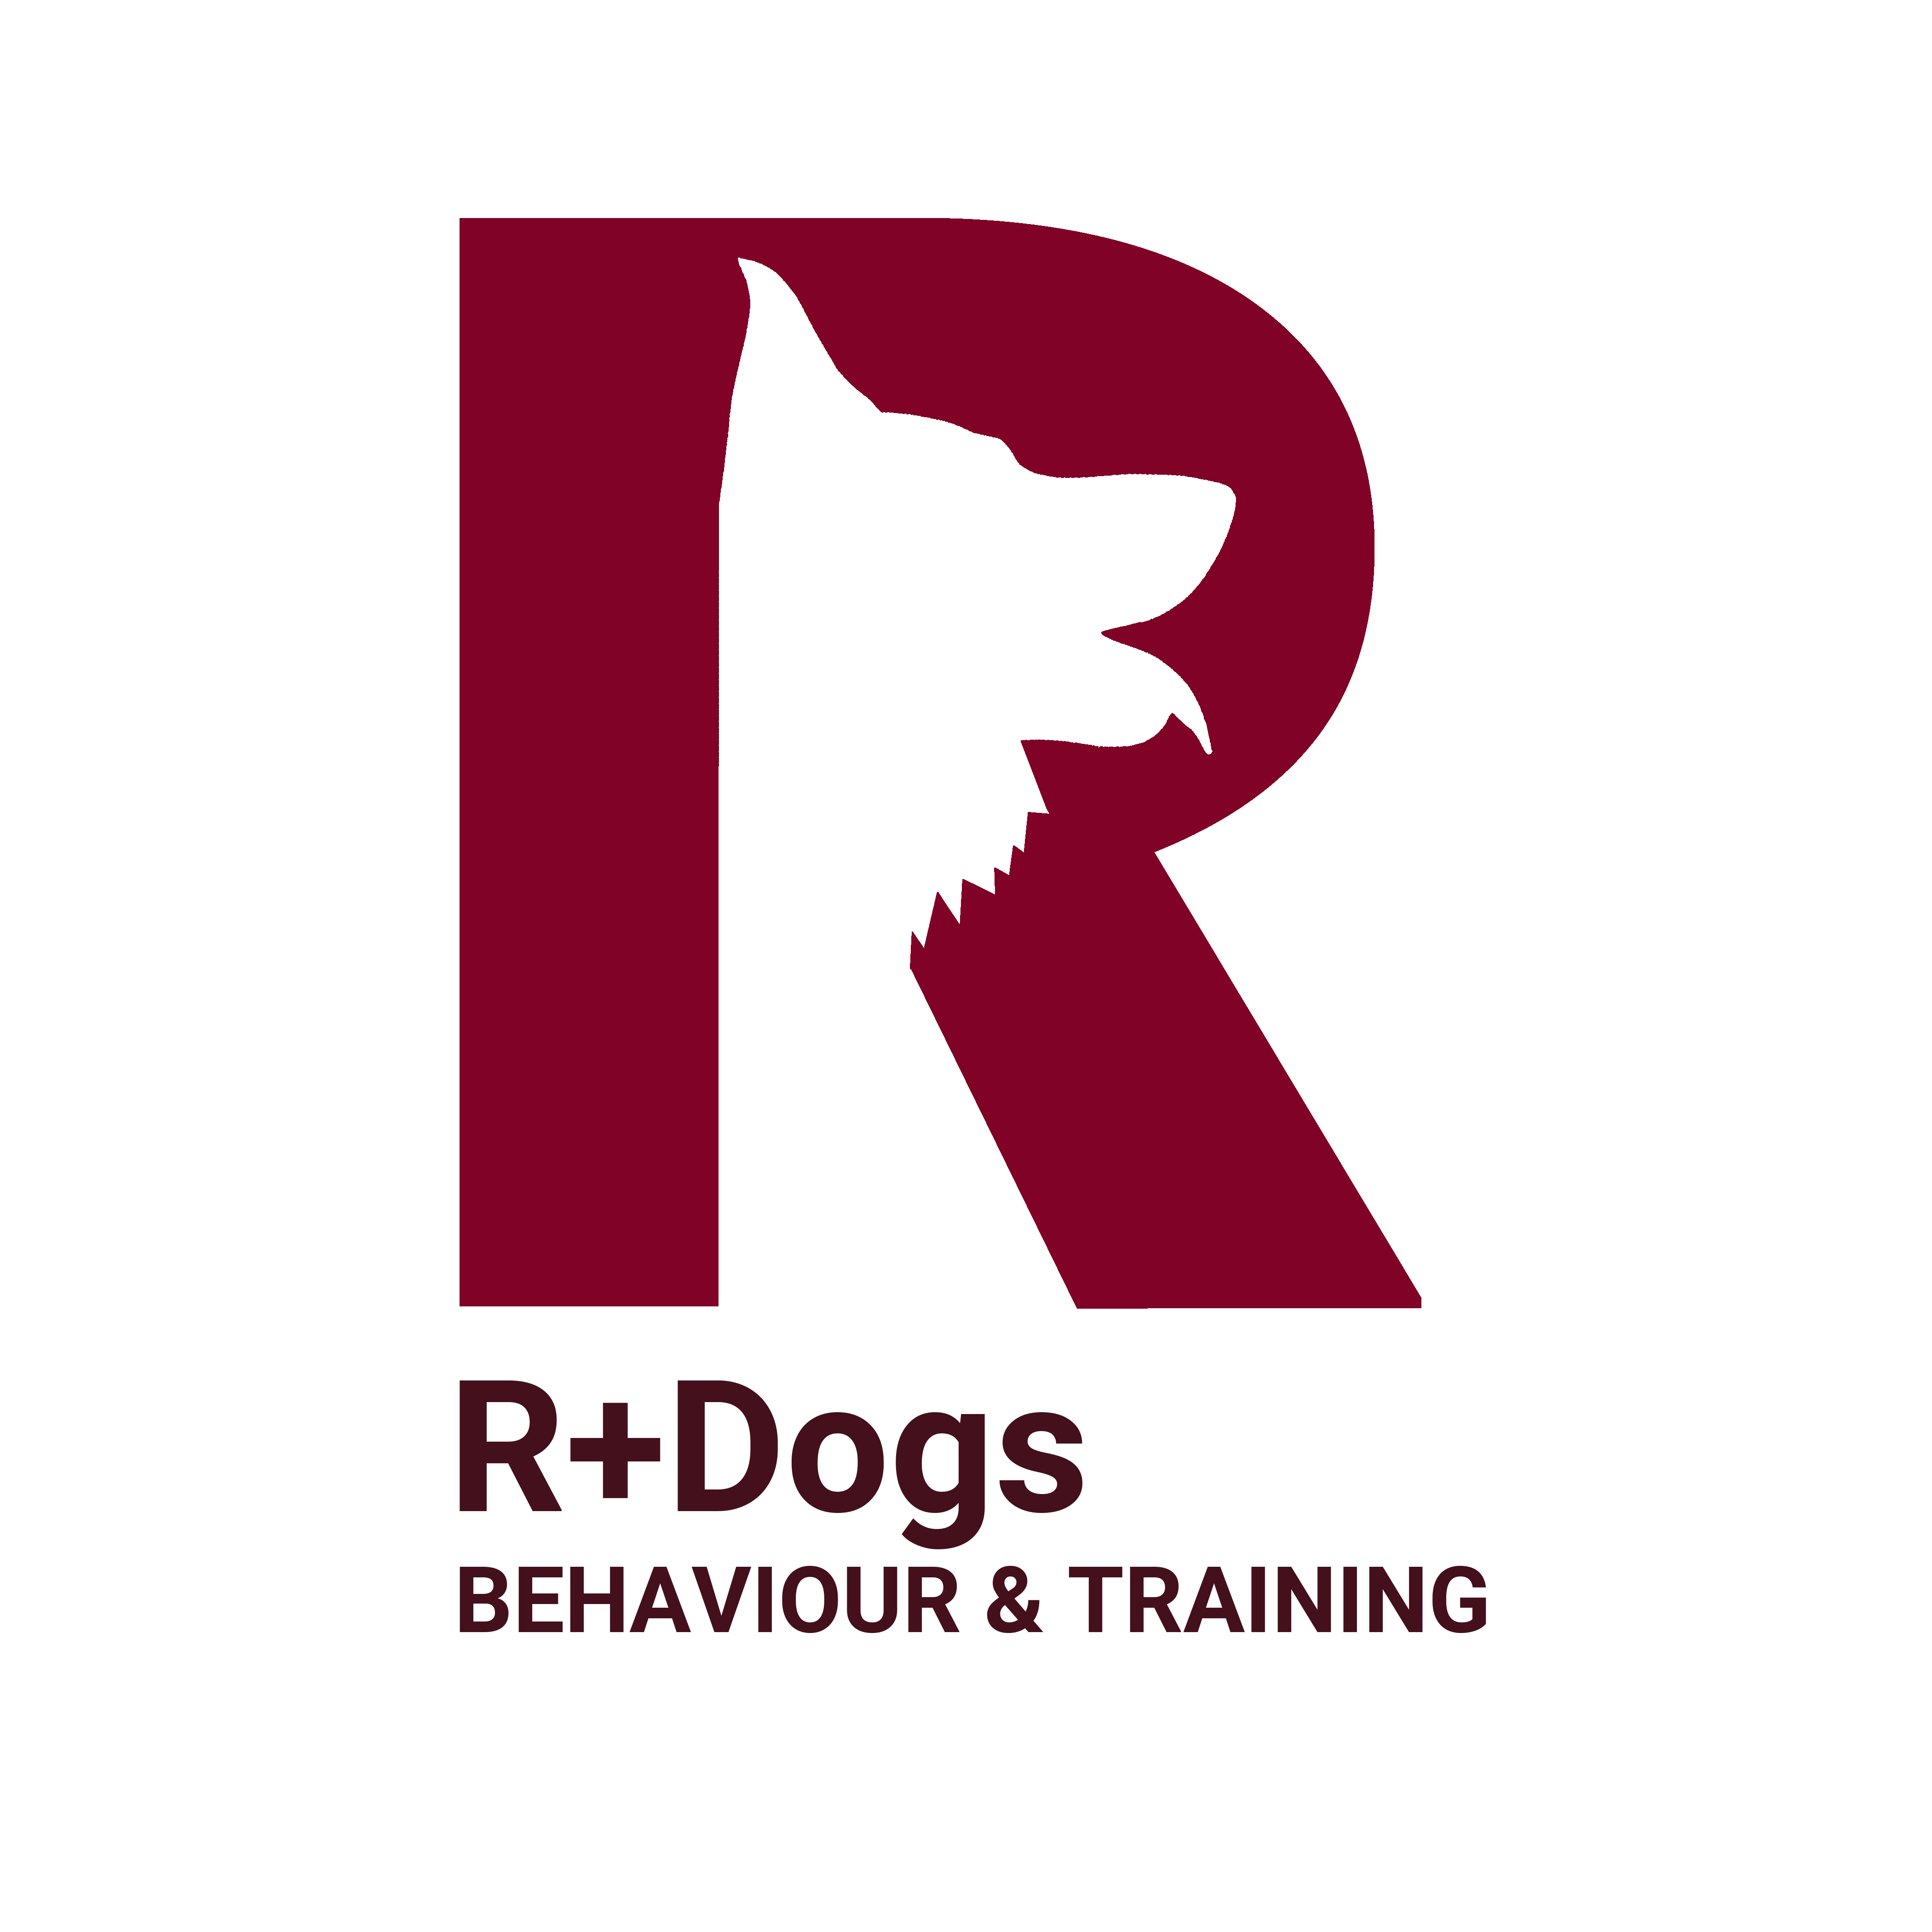 R+Dogs